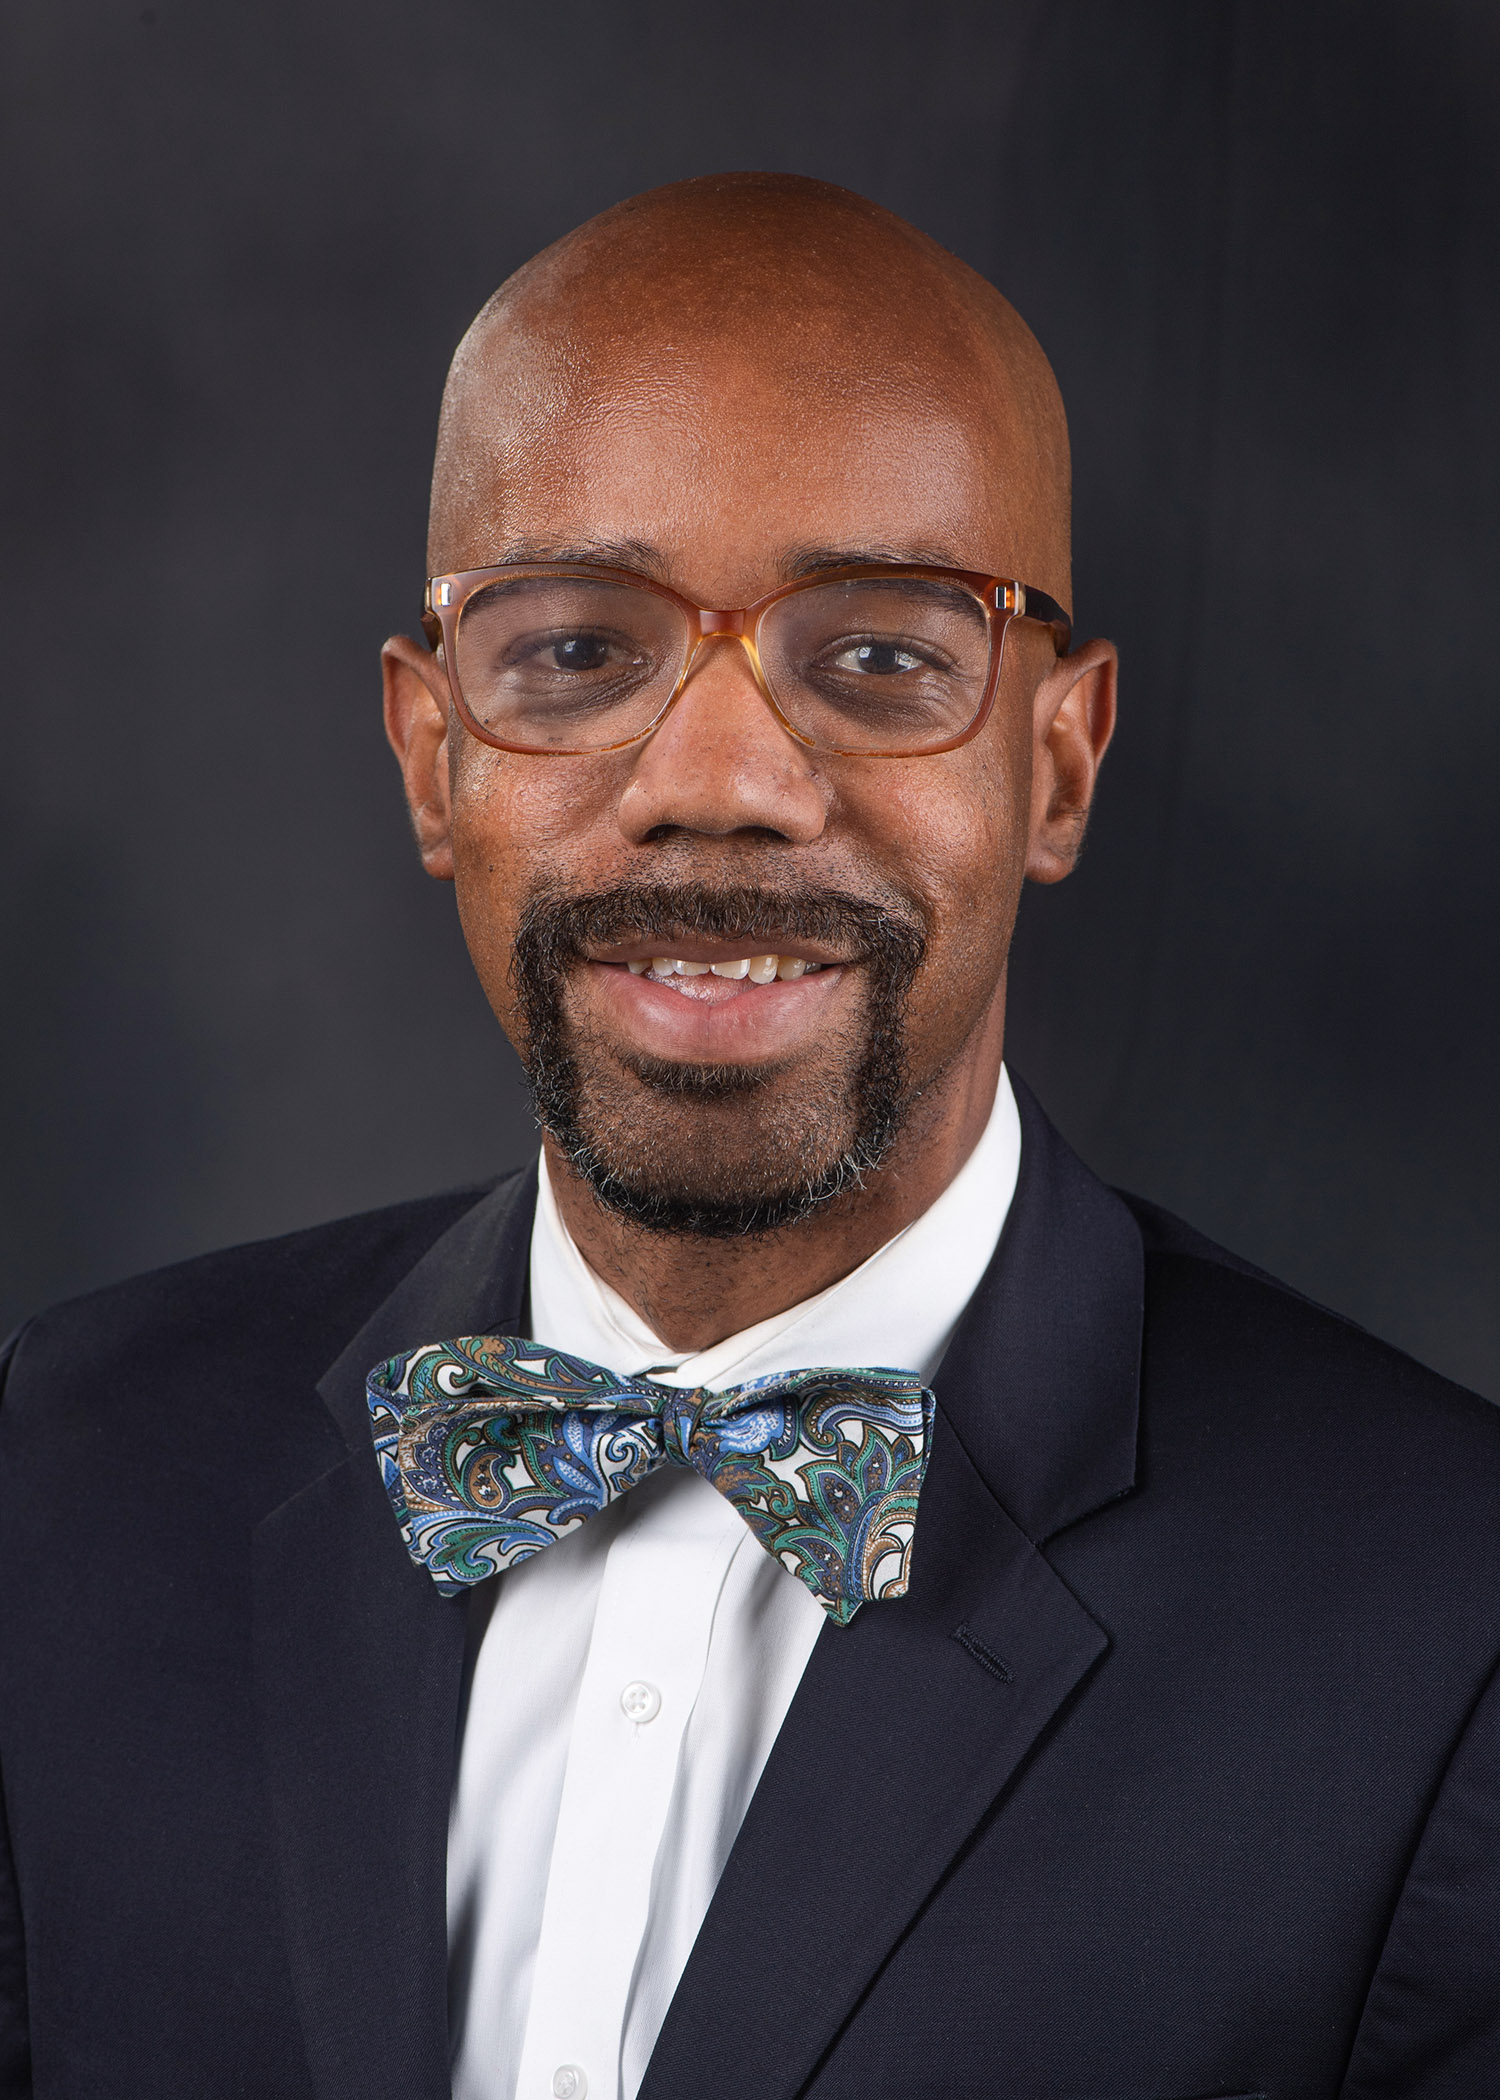 Lamar R. Hylton, Ph.D., has been selected to serve as Kent State University's vice president for student affairs.